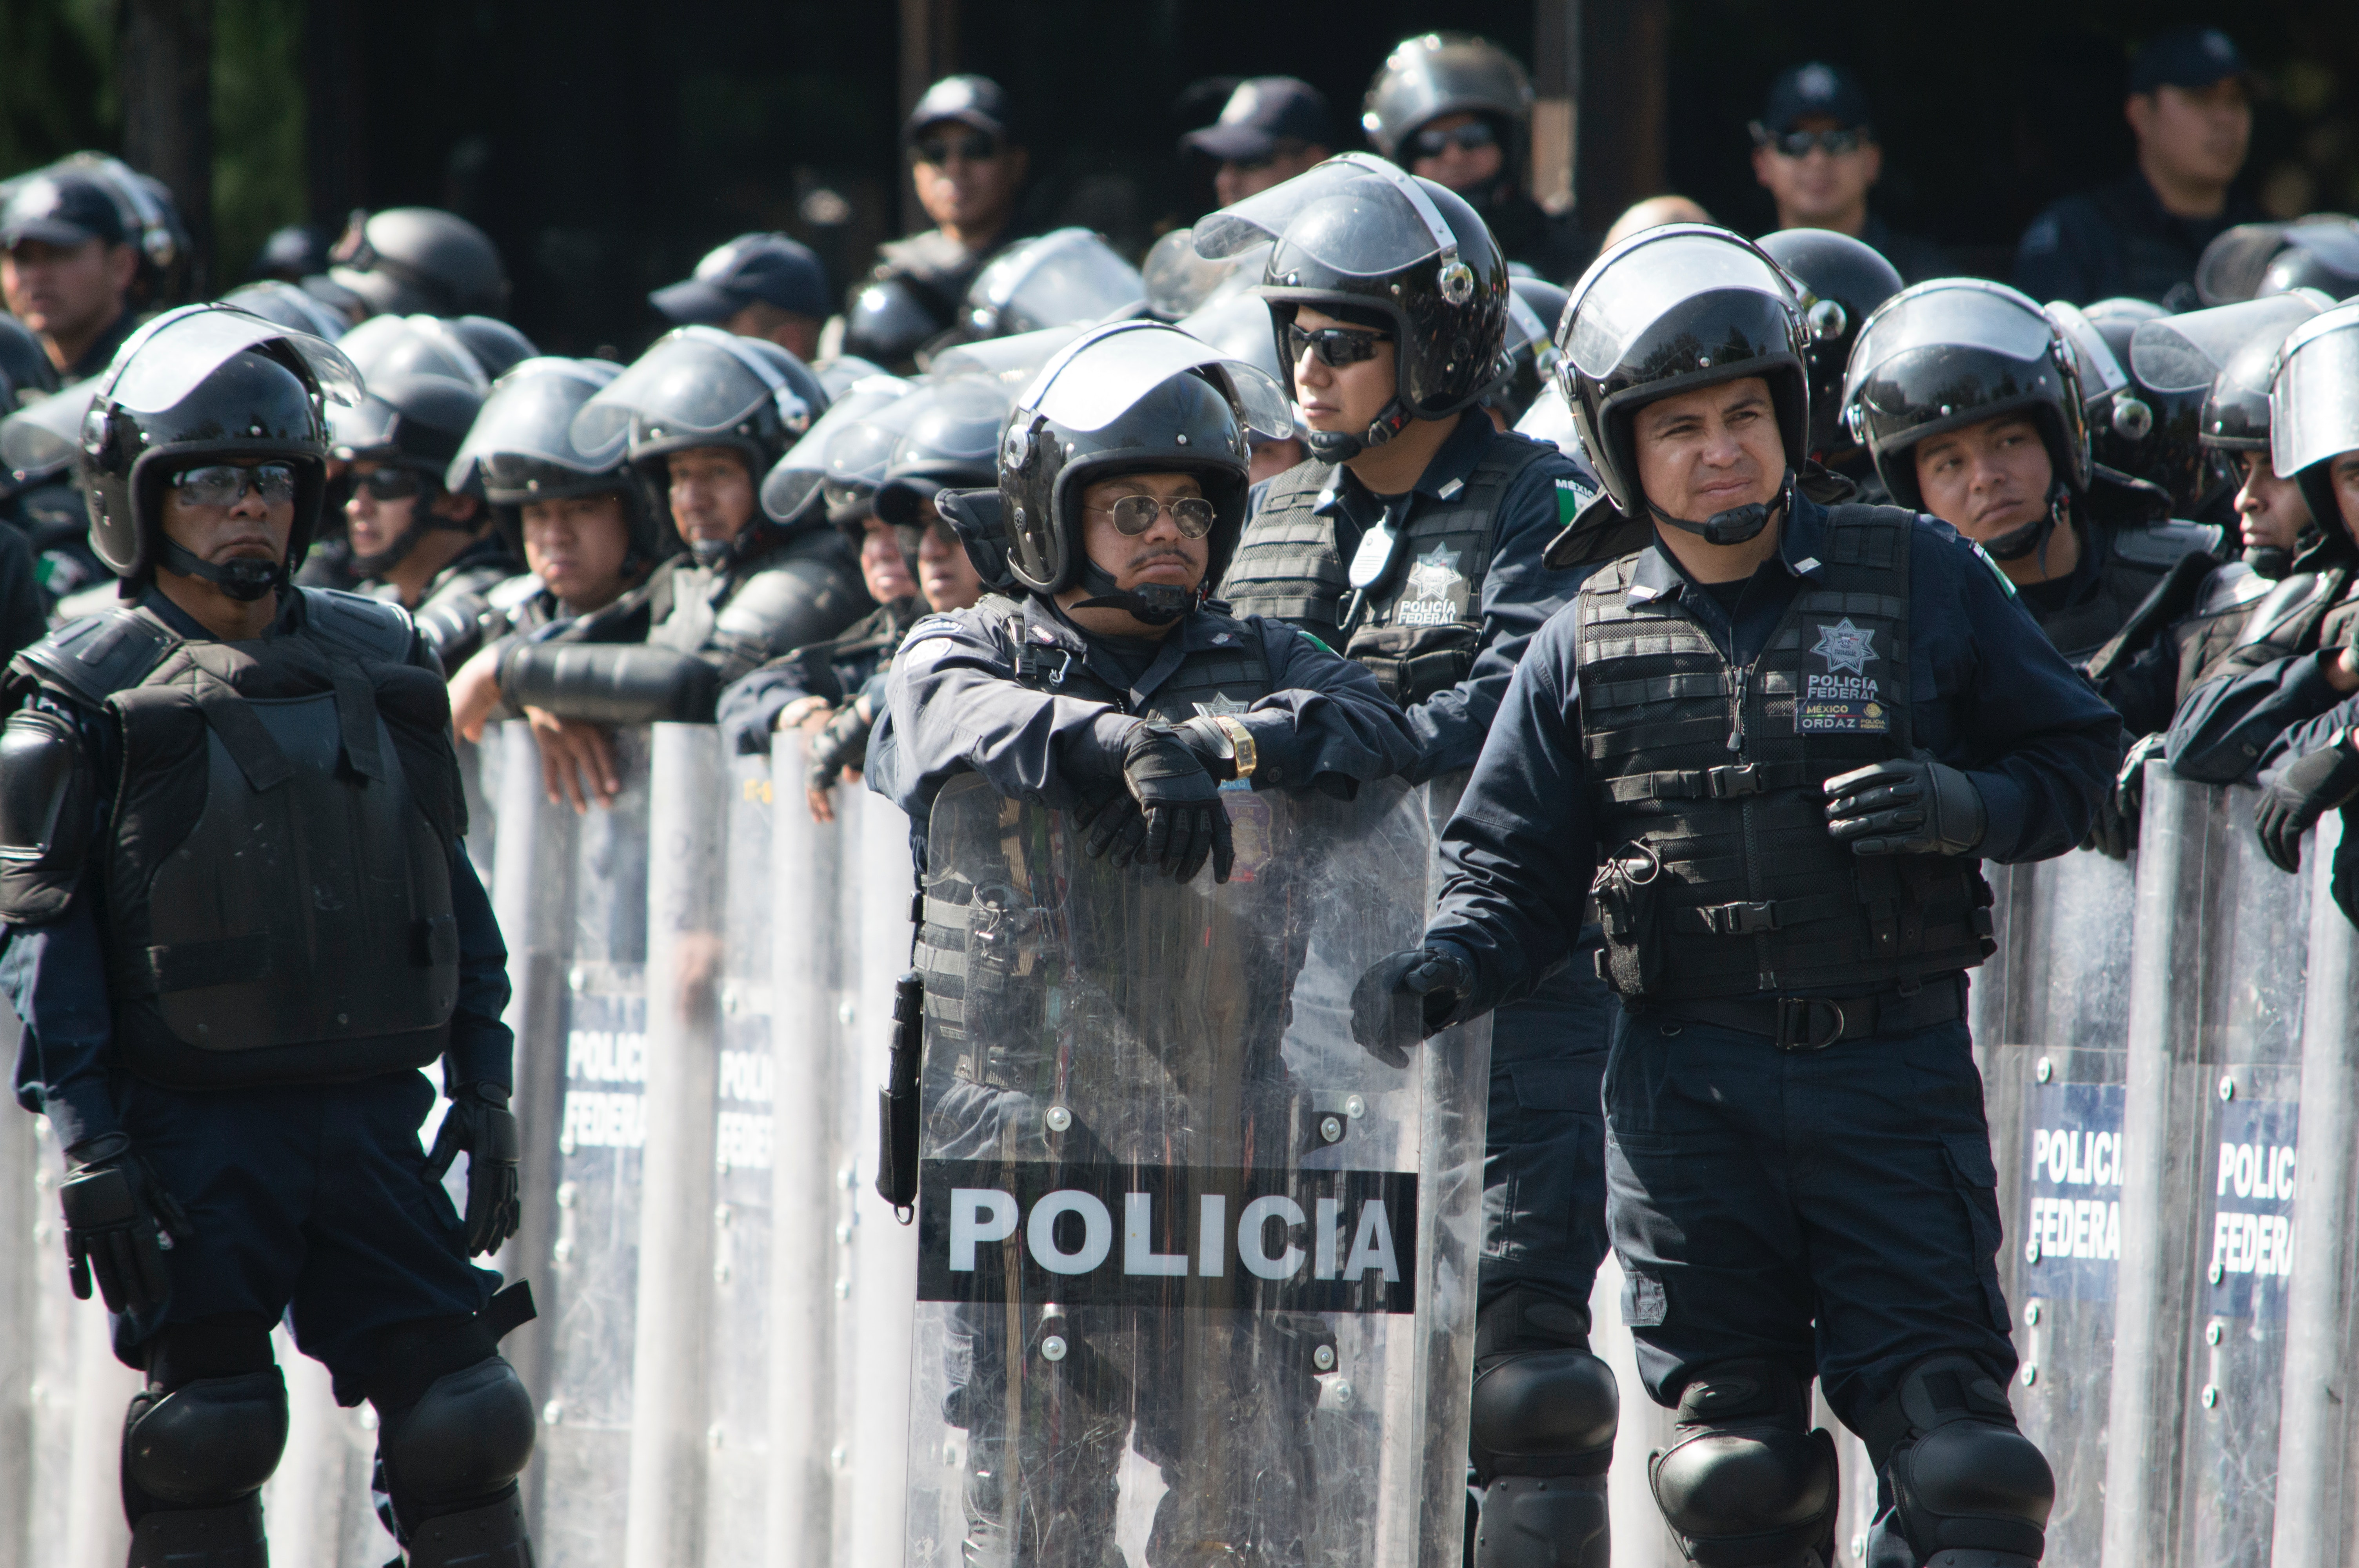 Mexico human rights group condemns extrajudicial killings by police